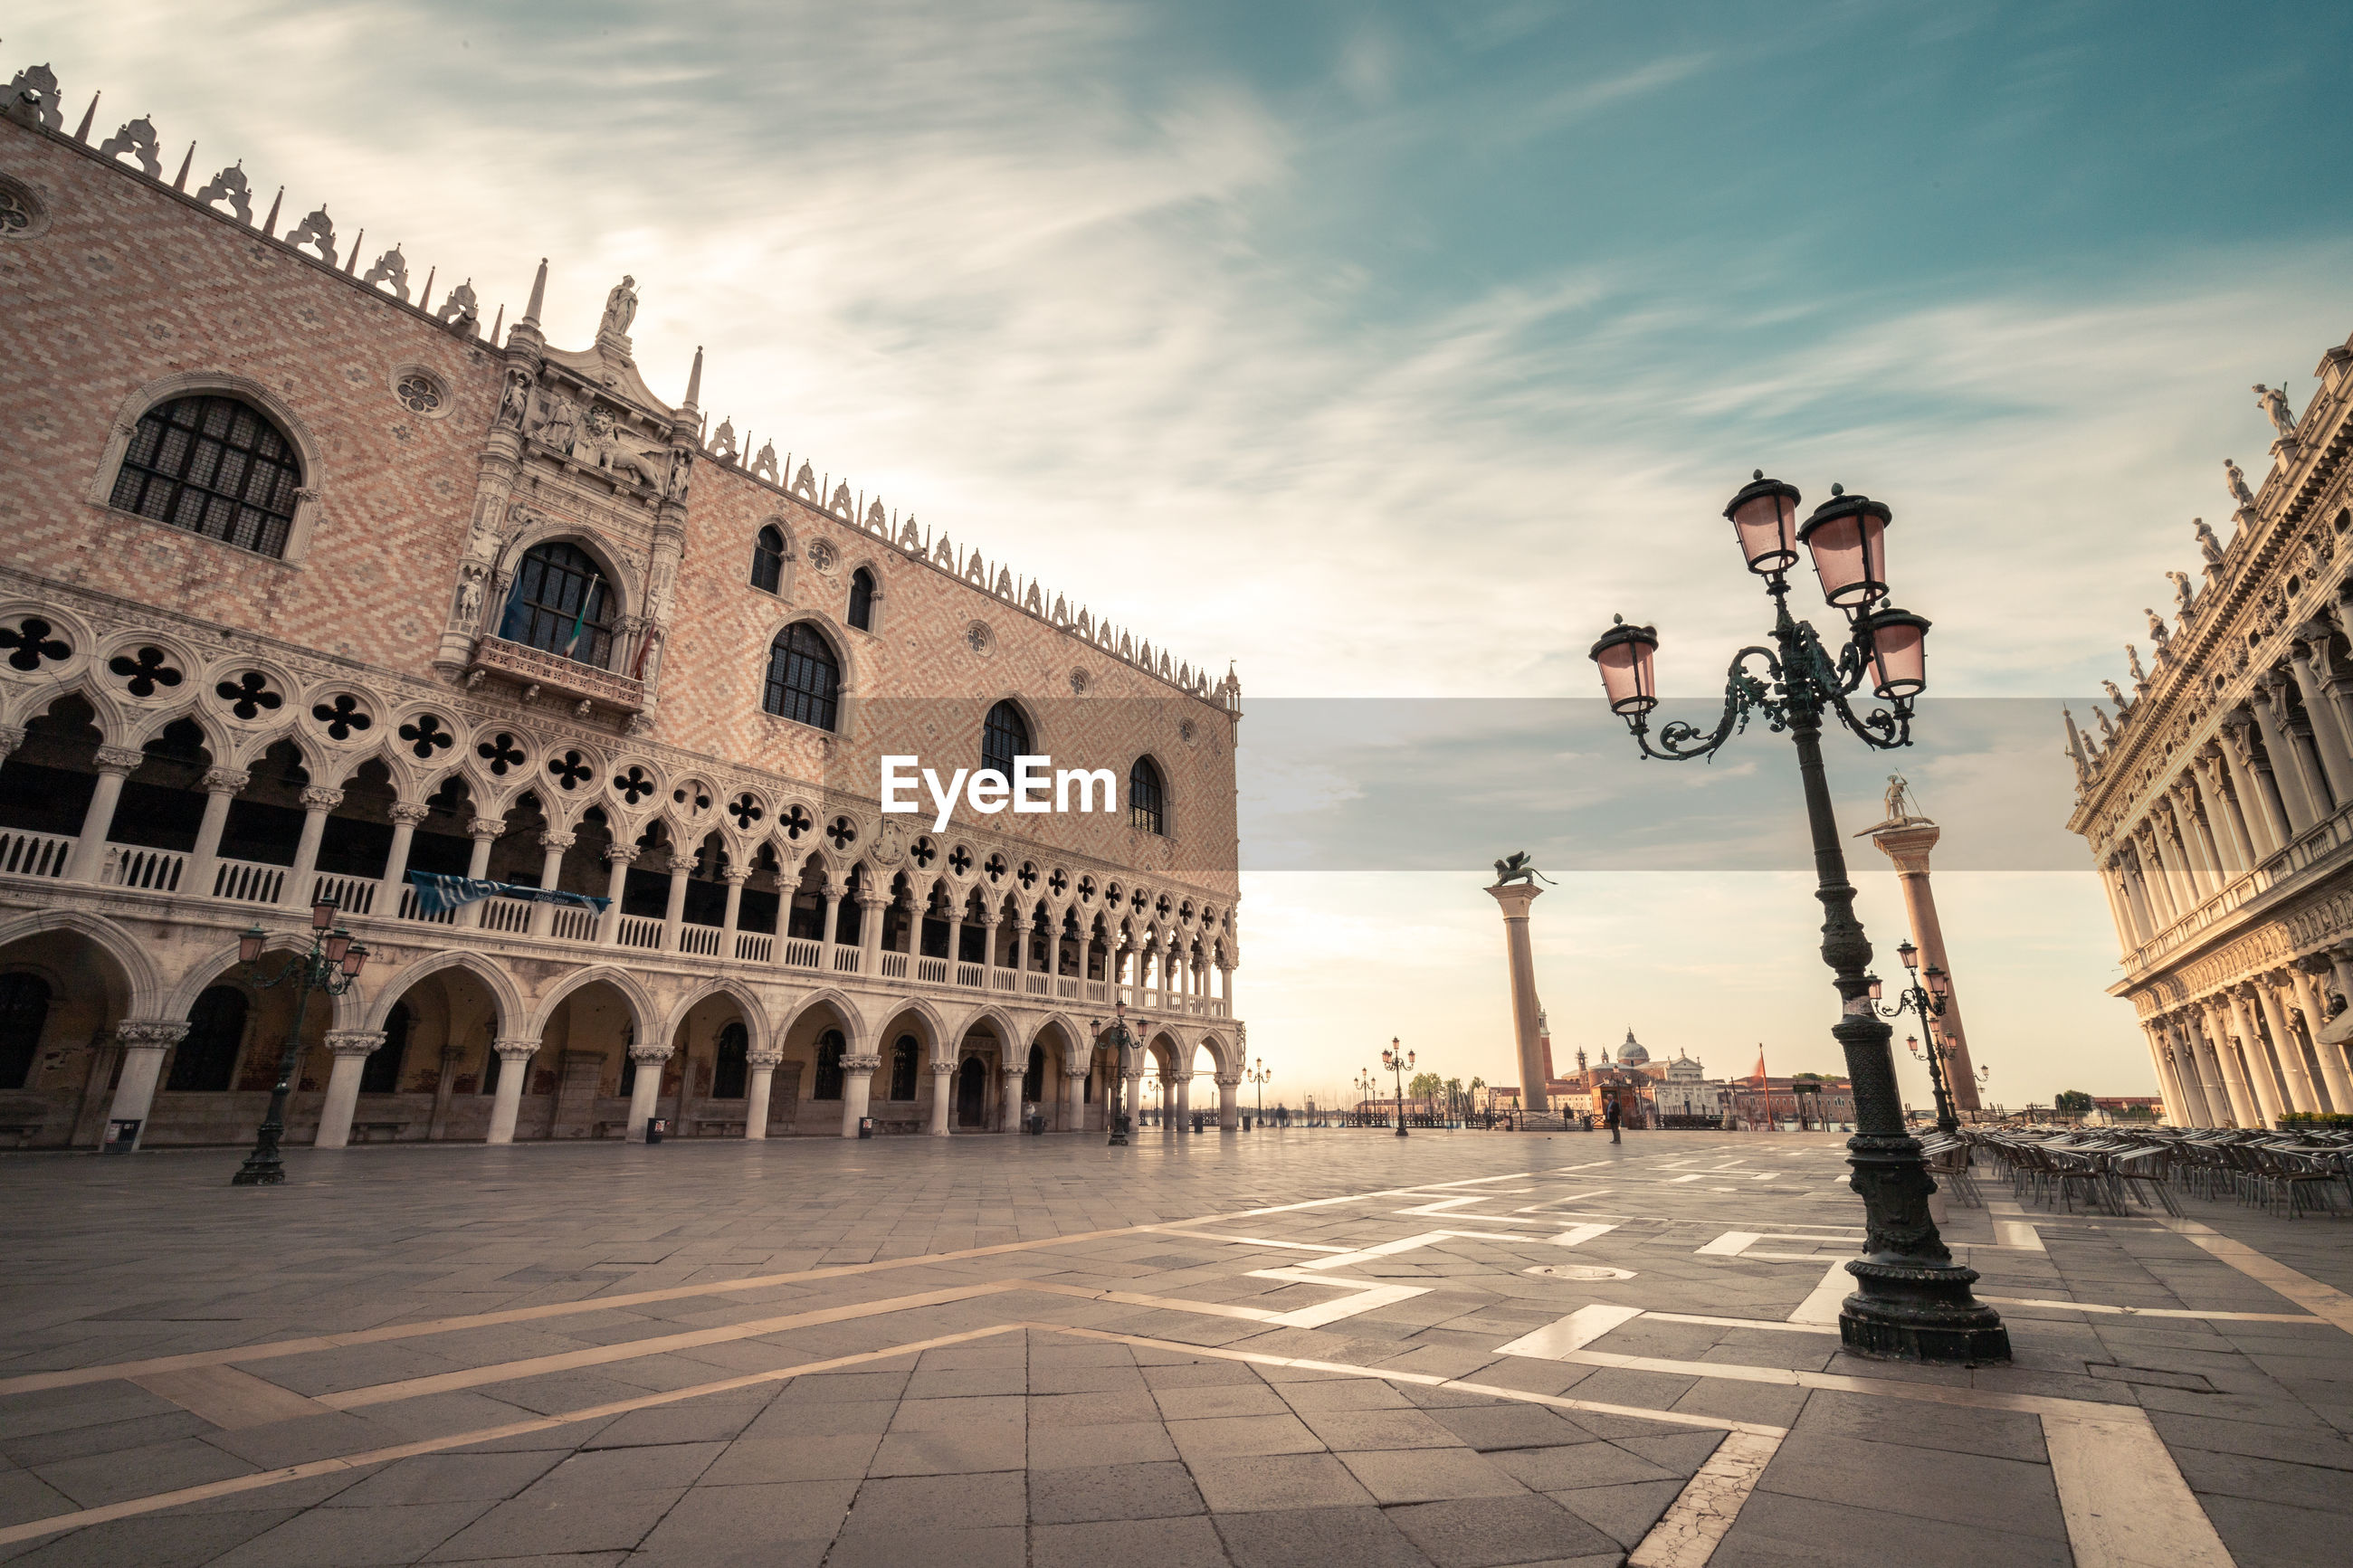 St mark square against sky during sunset